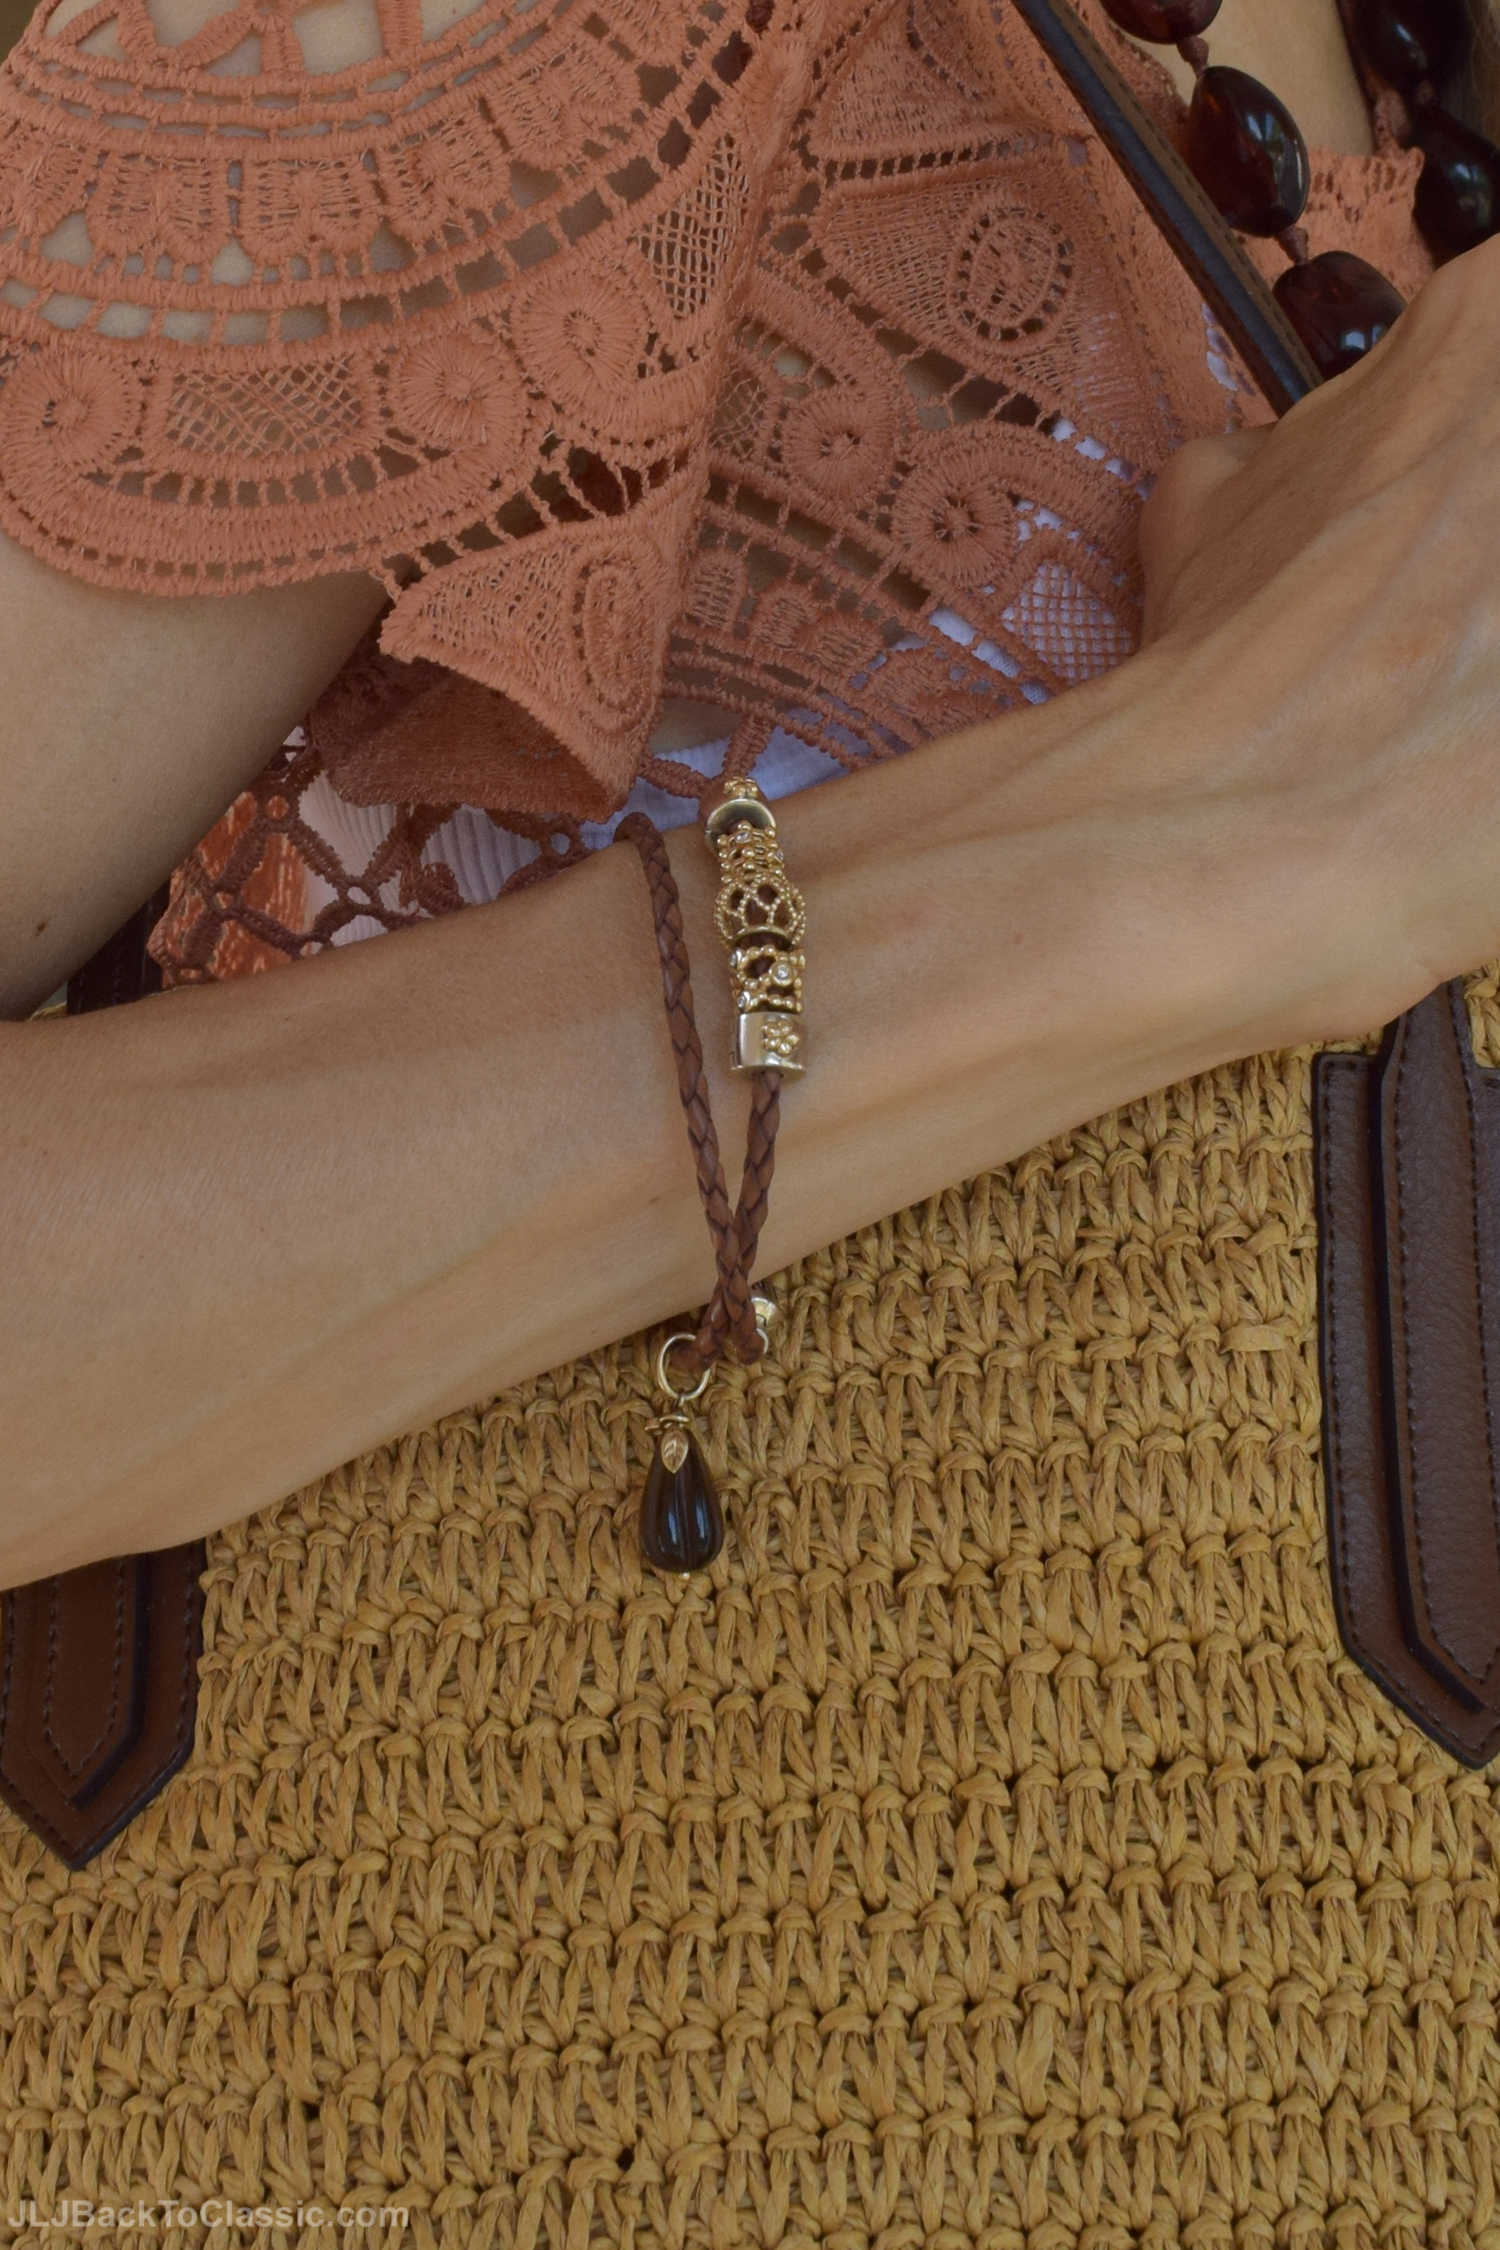 J-Crew-Bag-Pandora-Leather-Charm-Bracelet